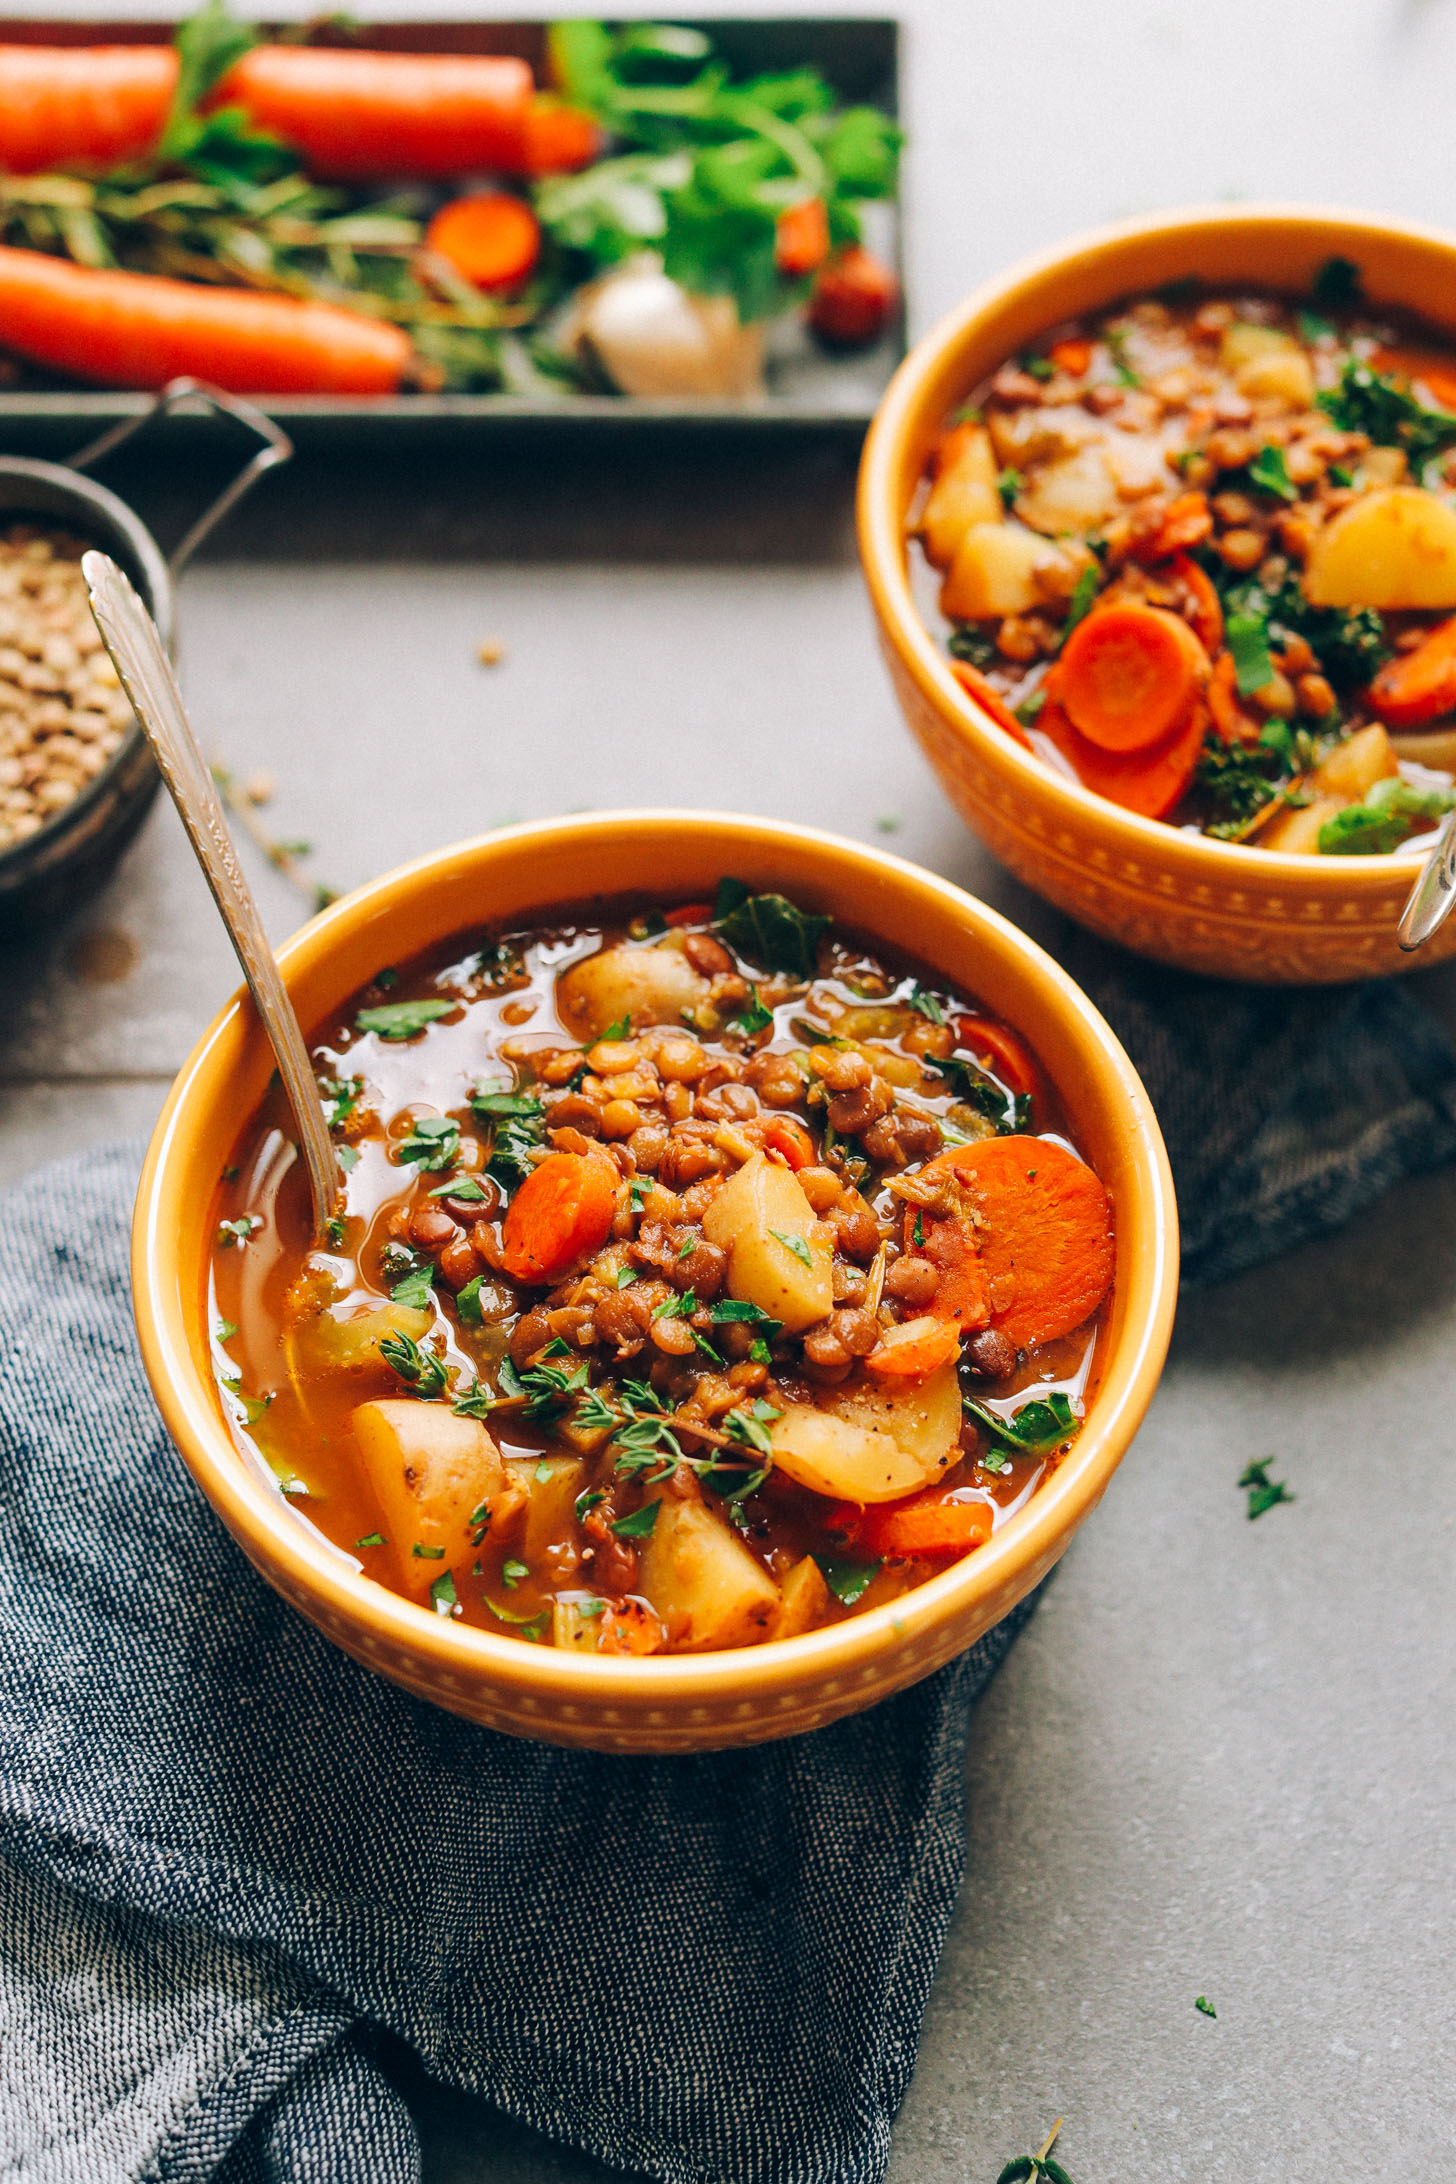 Bowls of our Everyday Lentil Soup recipe garnished with sprigs of fresh thyme